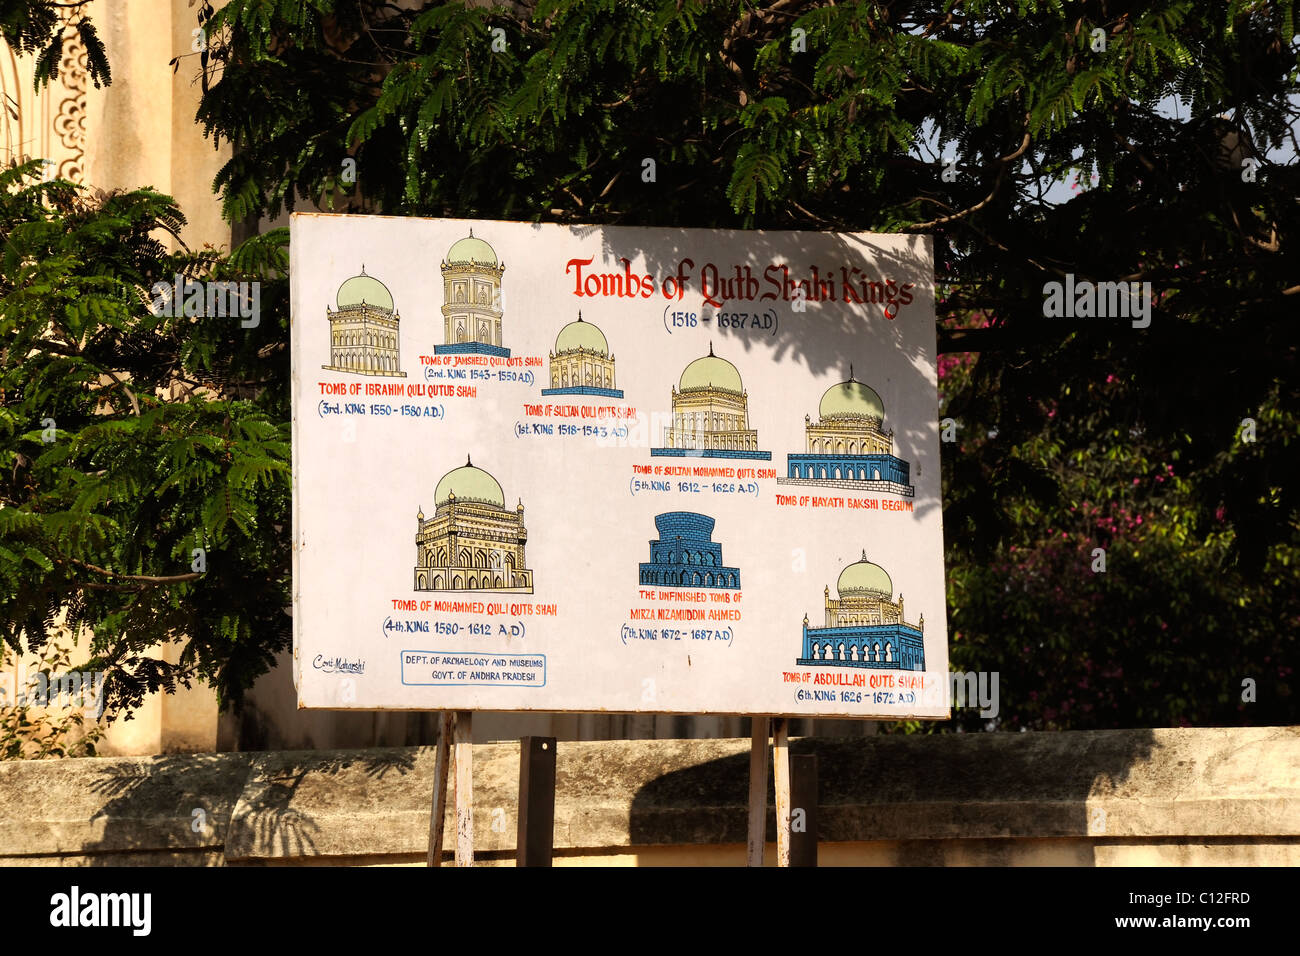 Tombs of the Qutb Shahi Kings, Hyderabad, - Stock Image